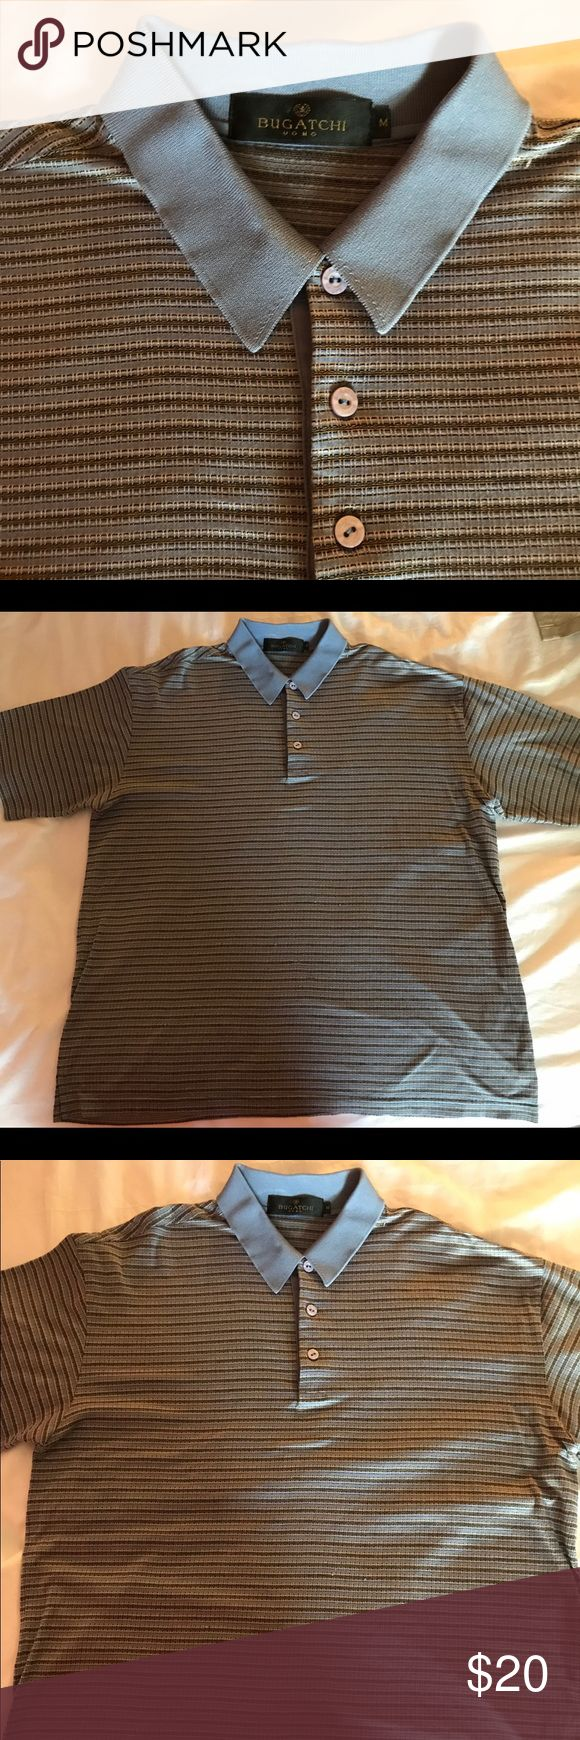 Men's Medium Bugatchi Polo Shirt Men's good condition preowned Bugatchi shirt. Nice design that is comfortable to wear. This shirt is versatile and can be worn for many occasions. Feel free to ask any questions! Bugatchi Shirts Polos